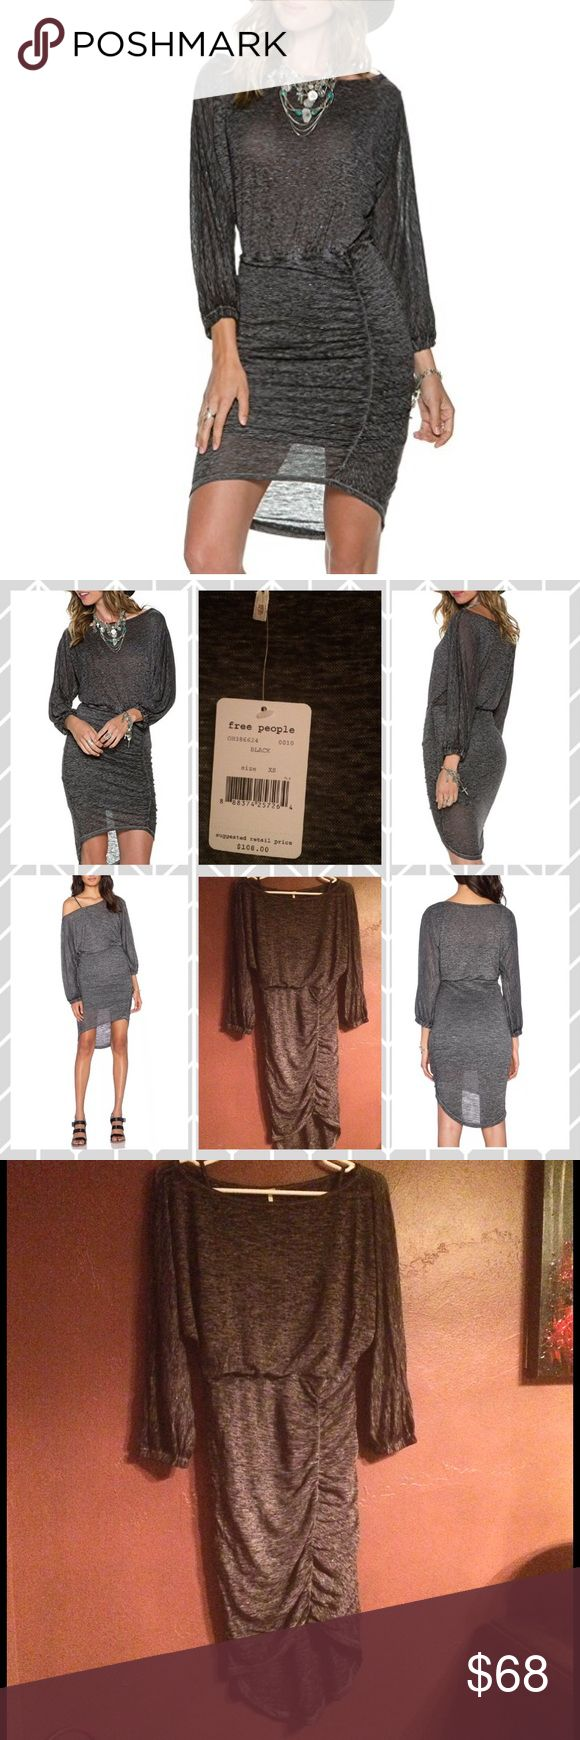 Free People Tidepool Midi Knit Asymmetrical Dress 🌺Free People🌺 Women's Tidepool Midi Knit Dress - photos don't do justice for this dress it will shape your figure so sexy Condition: New With Tags Retails: $108 Size: XS - Black & Gray Heathered - Slubbed knit dress - cinched detailing at side for a flattering & feminine silhouette. - Round neckline & three-quarter dolman sleeves with elastic cuffs. - Pull-on design. - Elastic waist flatters your figure - Asymmetrical hemline. - 51%…